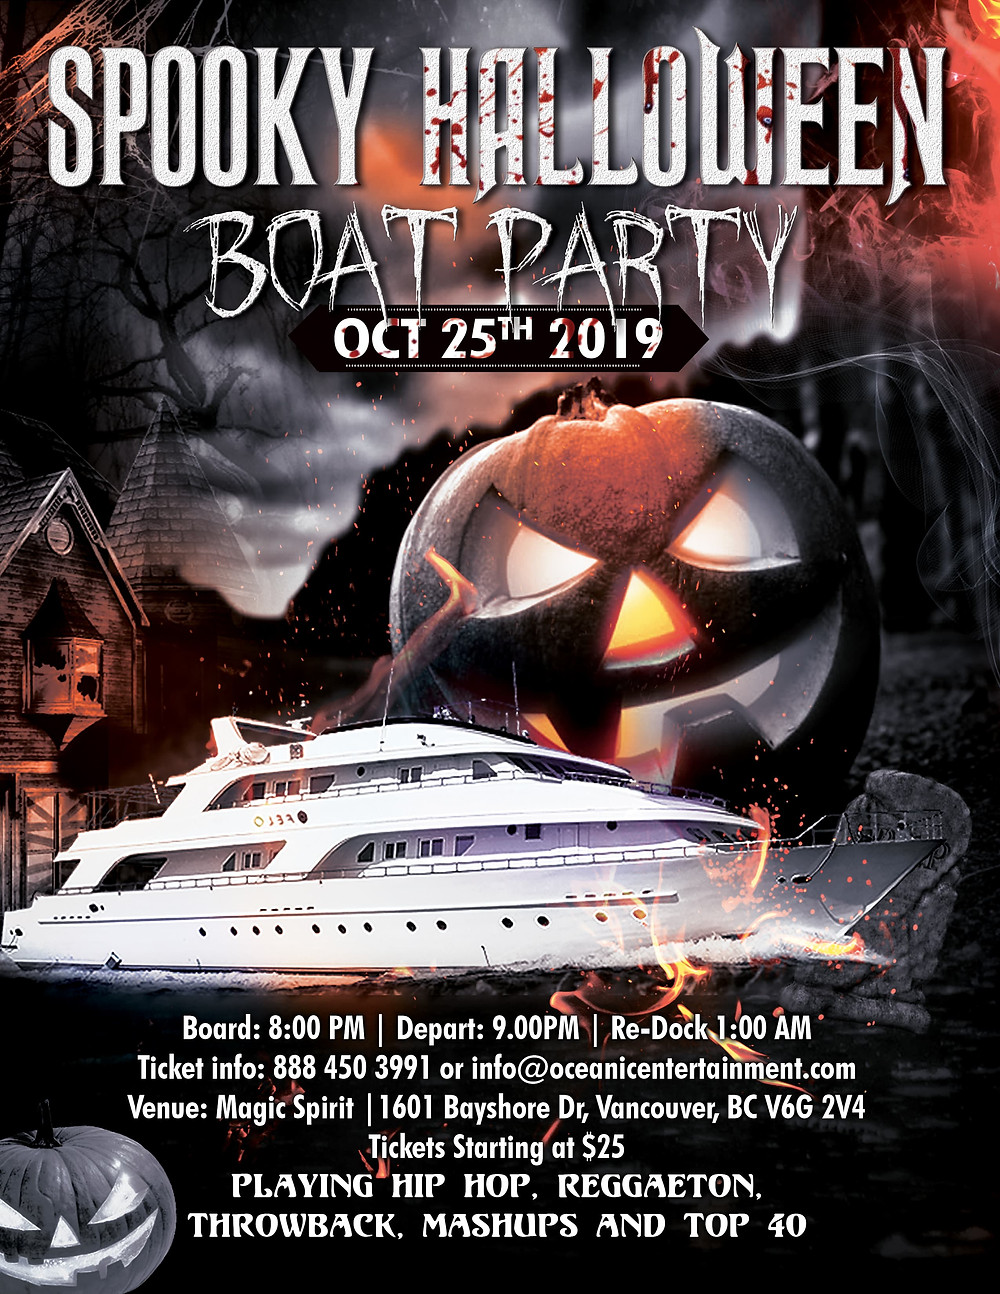 Spooky Halloween Boat Party Vancouver. Things to do Halloween